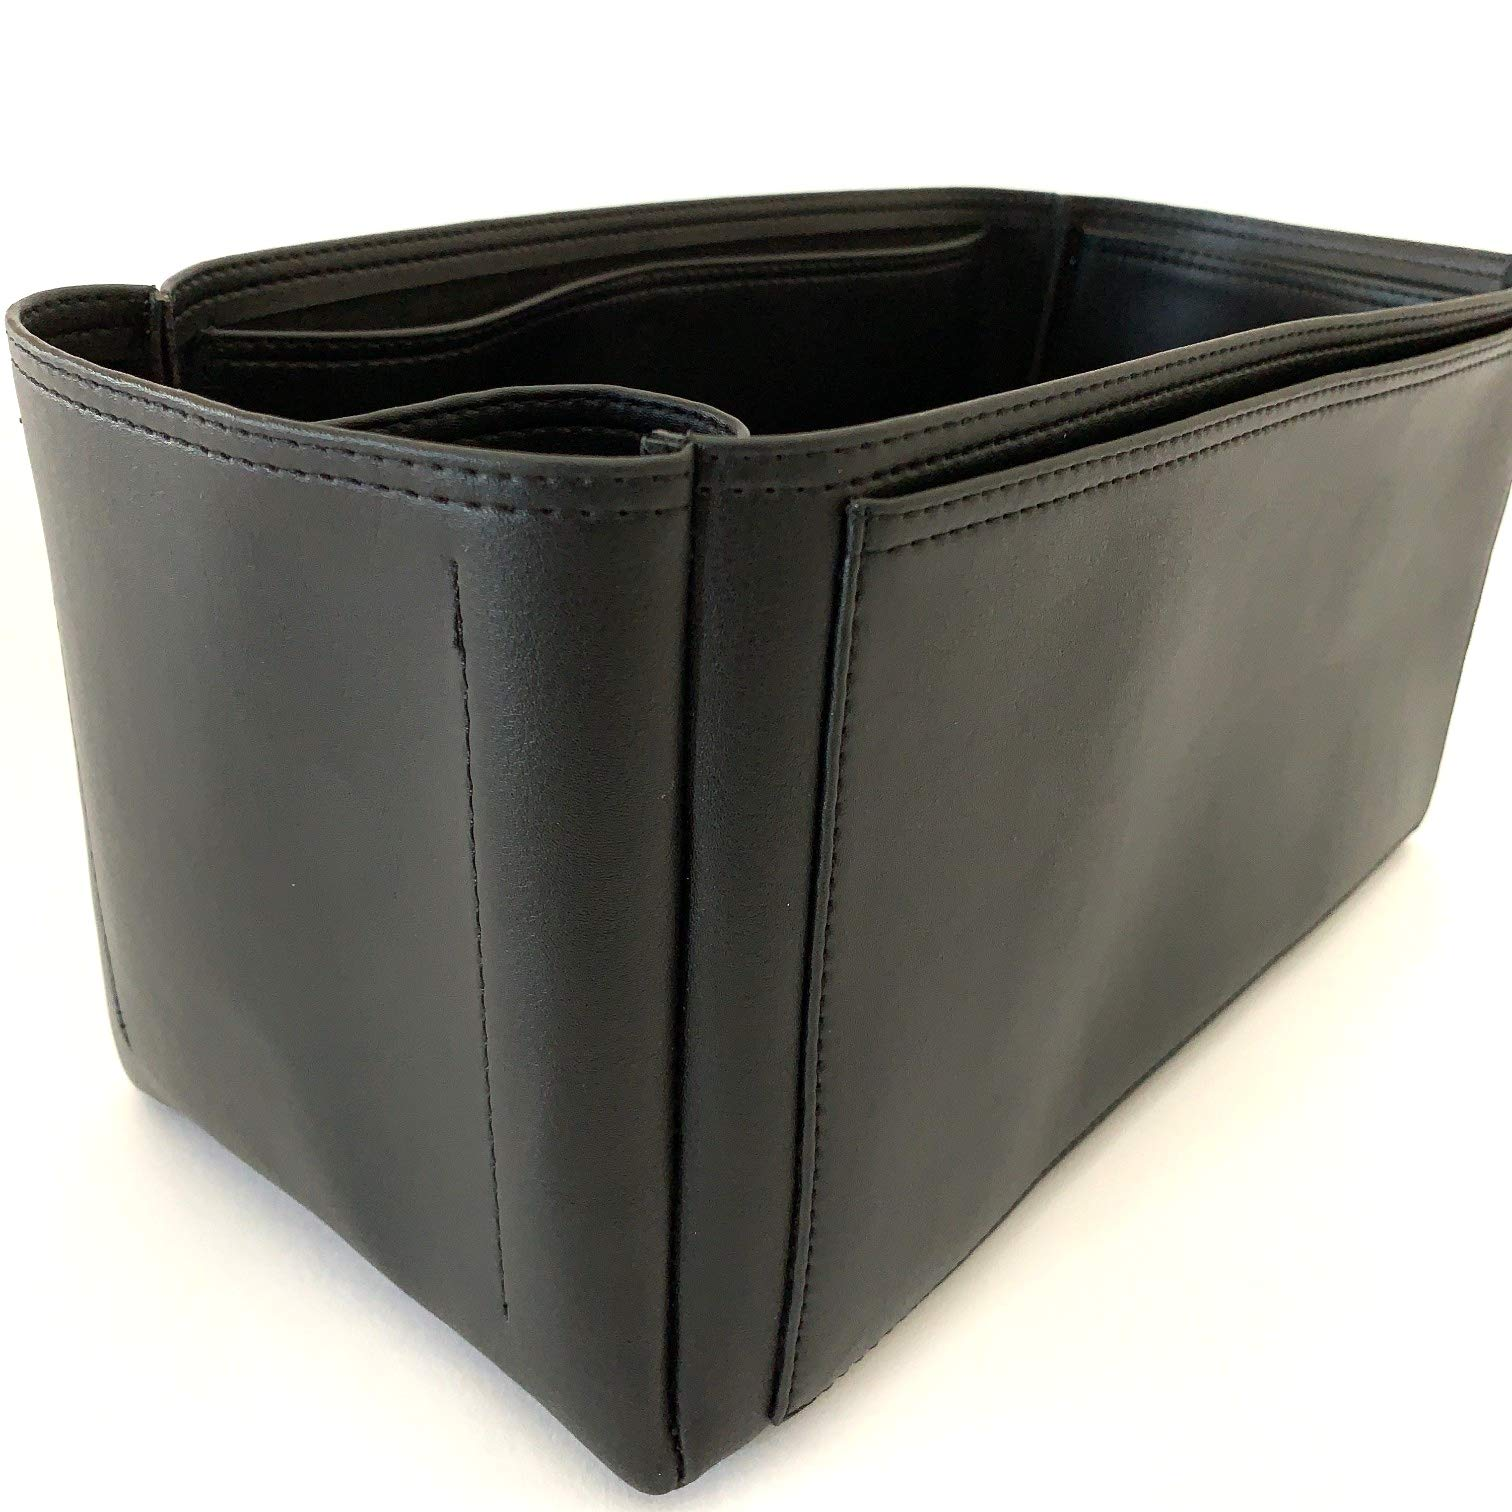 Vegan Leather Organizer for Cuyana tote bags - Premium Bag Purse Insert (Black)